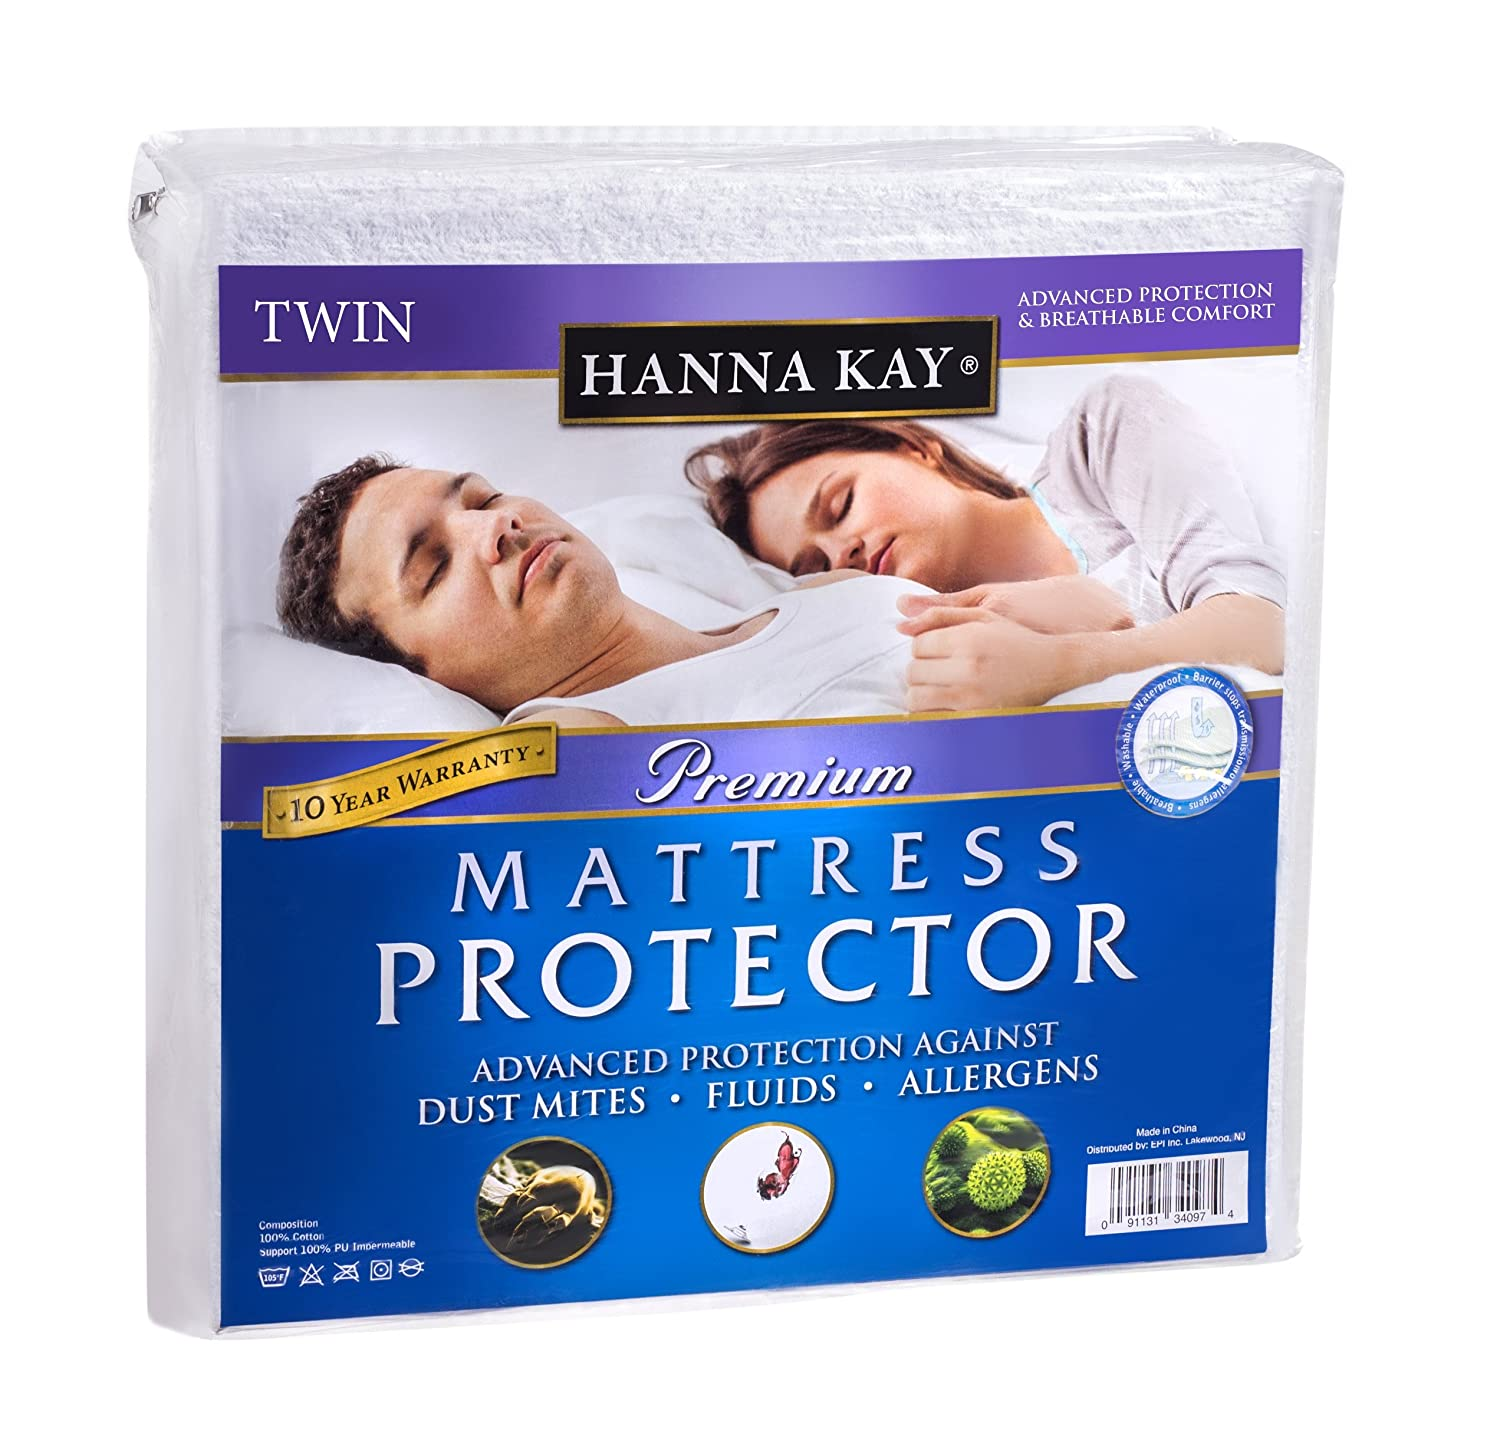 Hanna Kay Mattress Protector Waterproof Breathable and Hypoallergenic Twin Size B005DN664S  シングル